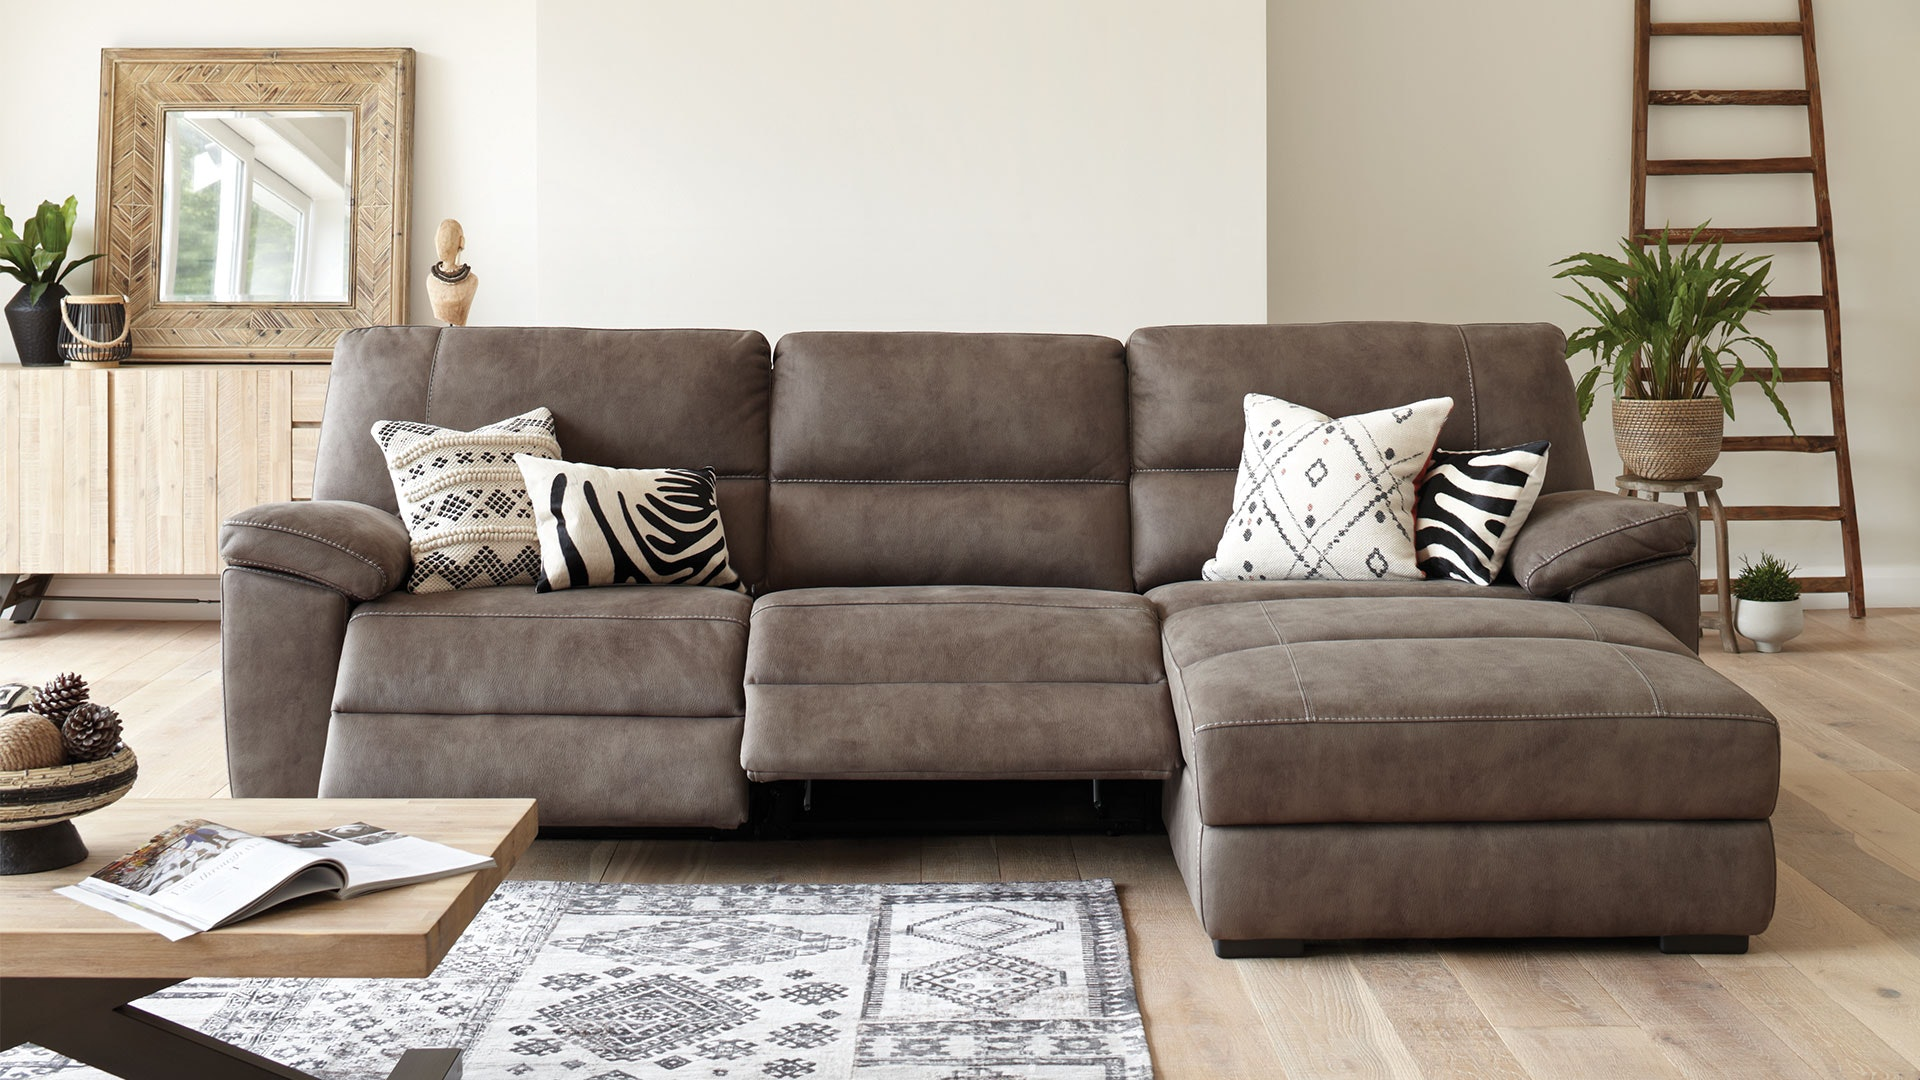 Picture of: Jenson 2 5 Seater Fabric Recliner Sofa With Chaise By Synargy Harvey Norman New Zealand